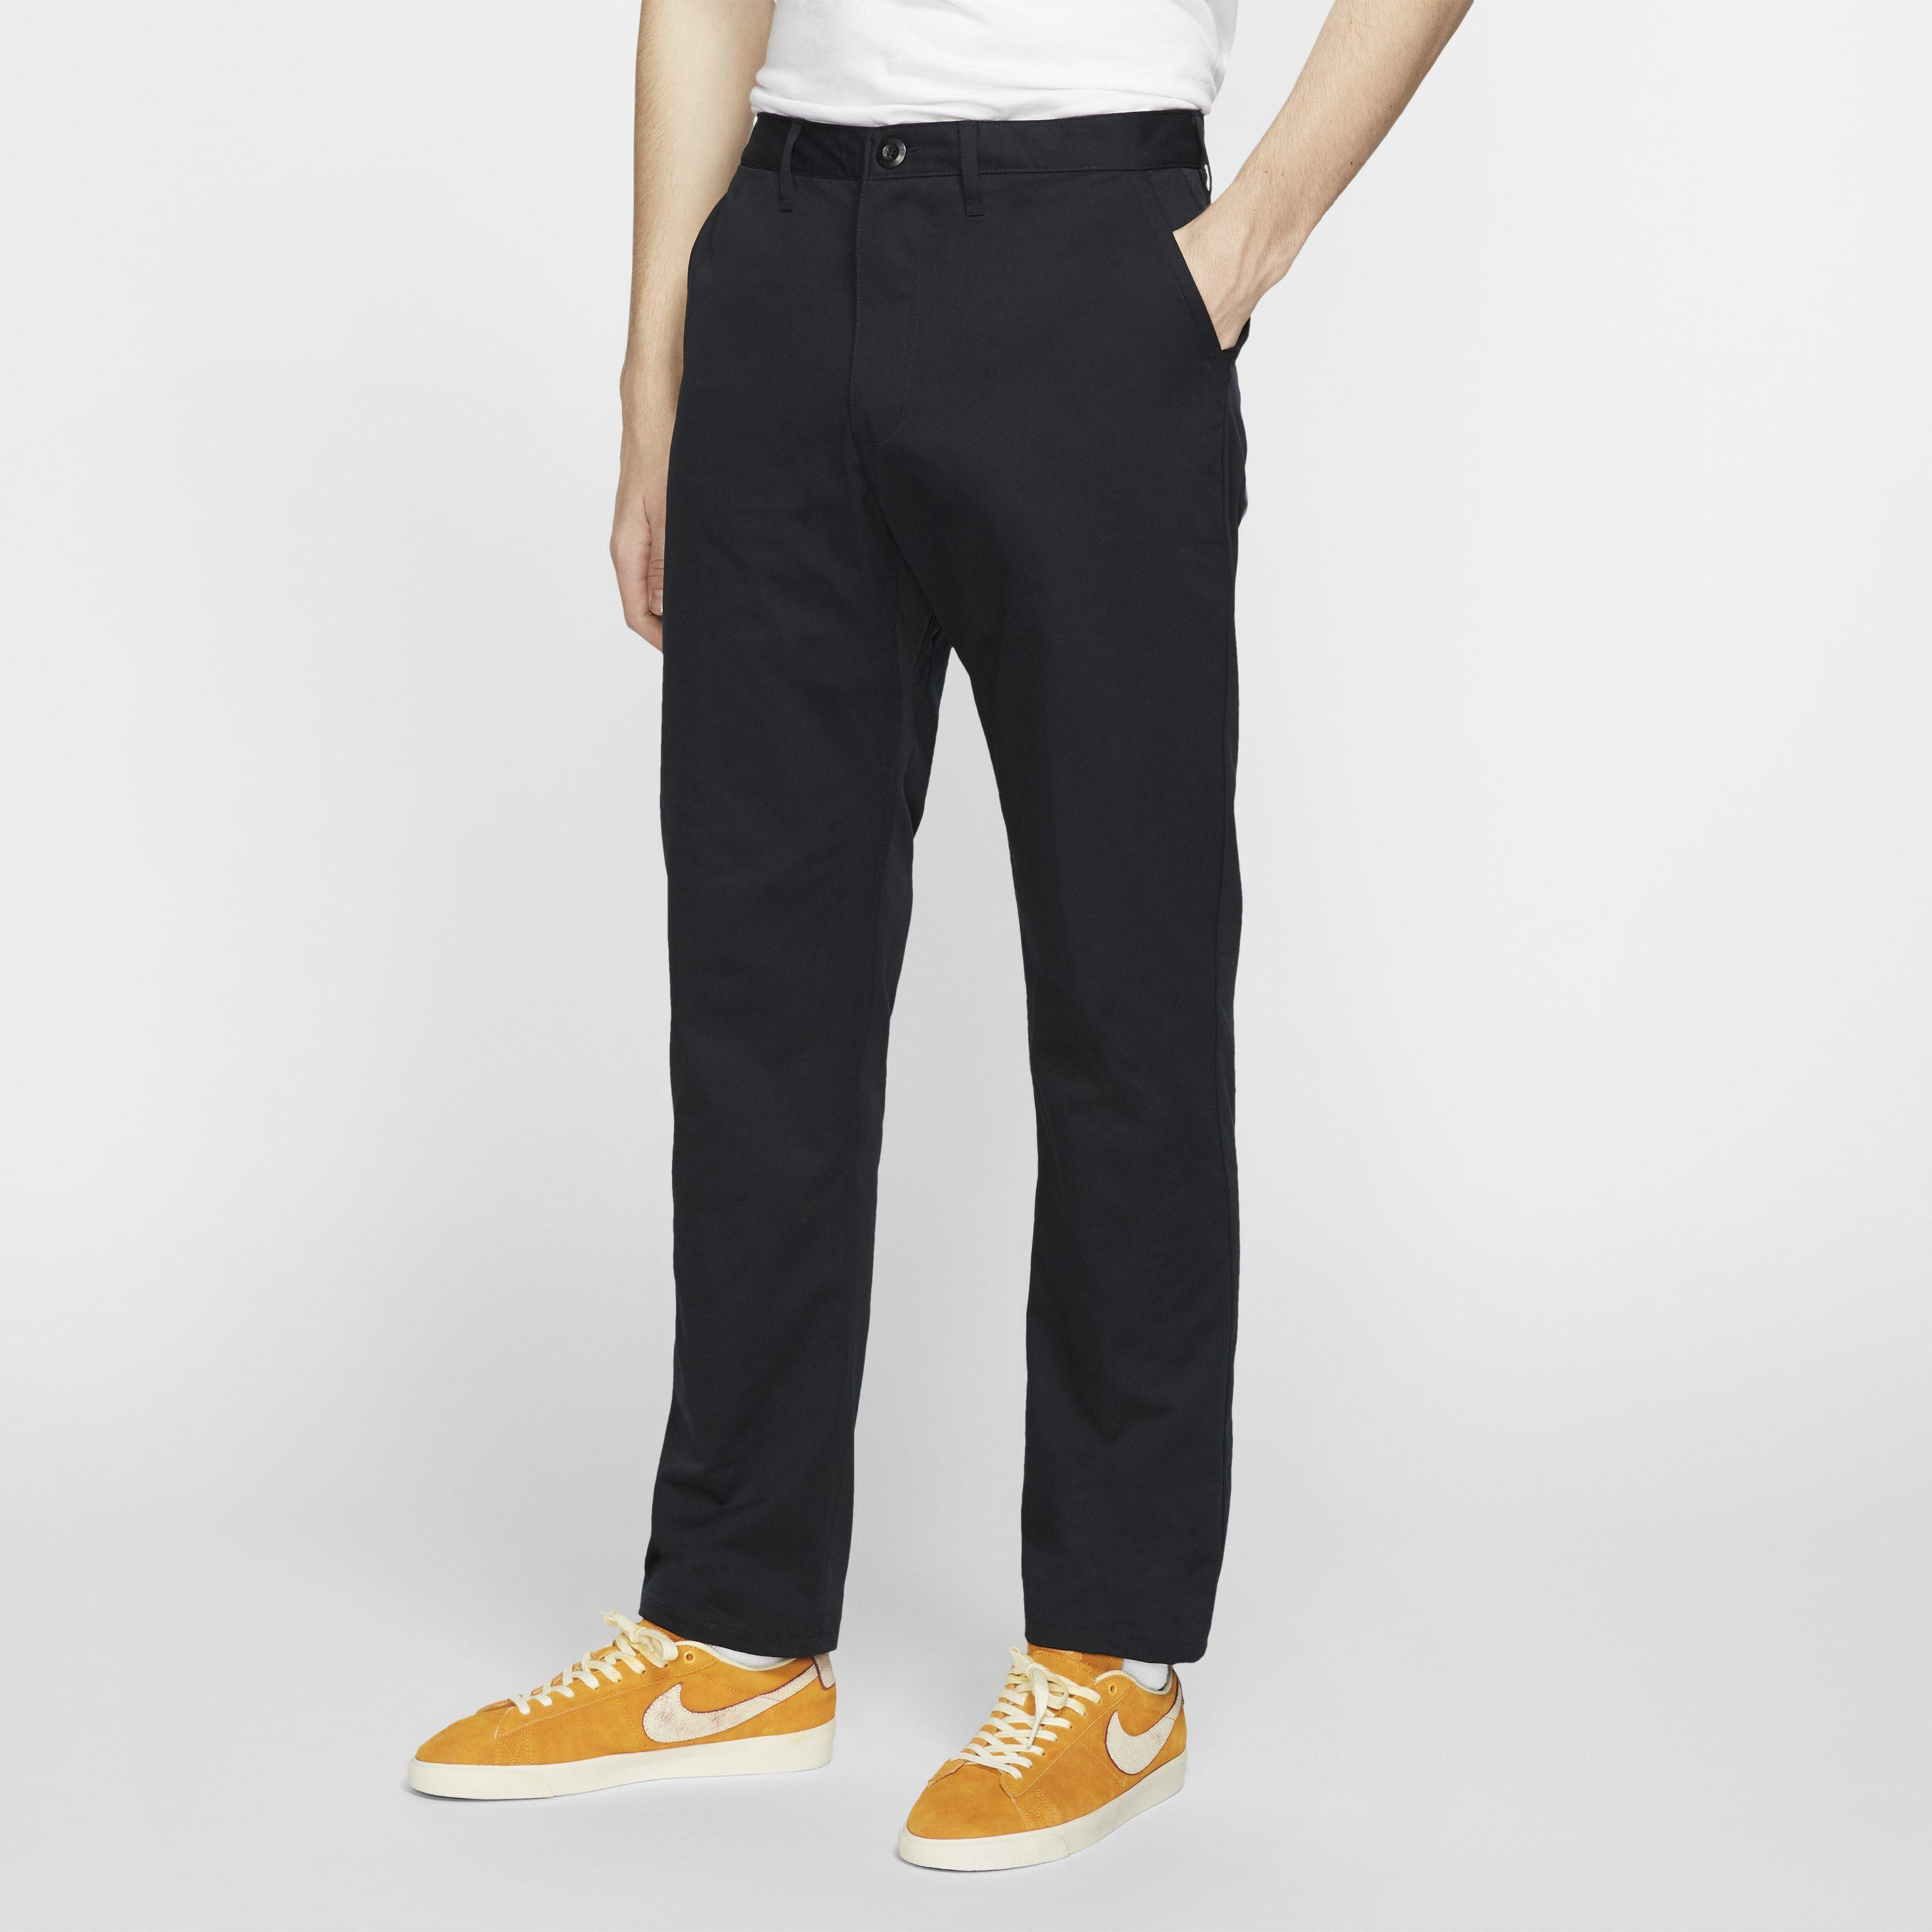 new product aedf3 c6a0a Nike Sb Dri-fit Ftm Standard-fit Trousers in Black for Men - Lyst